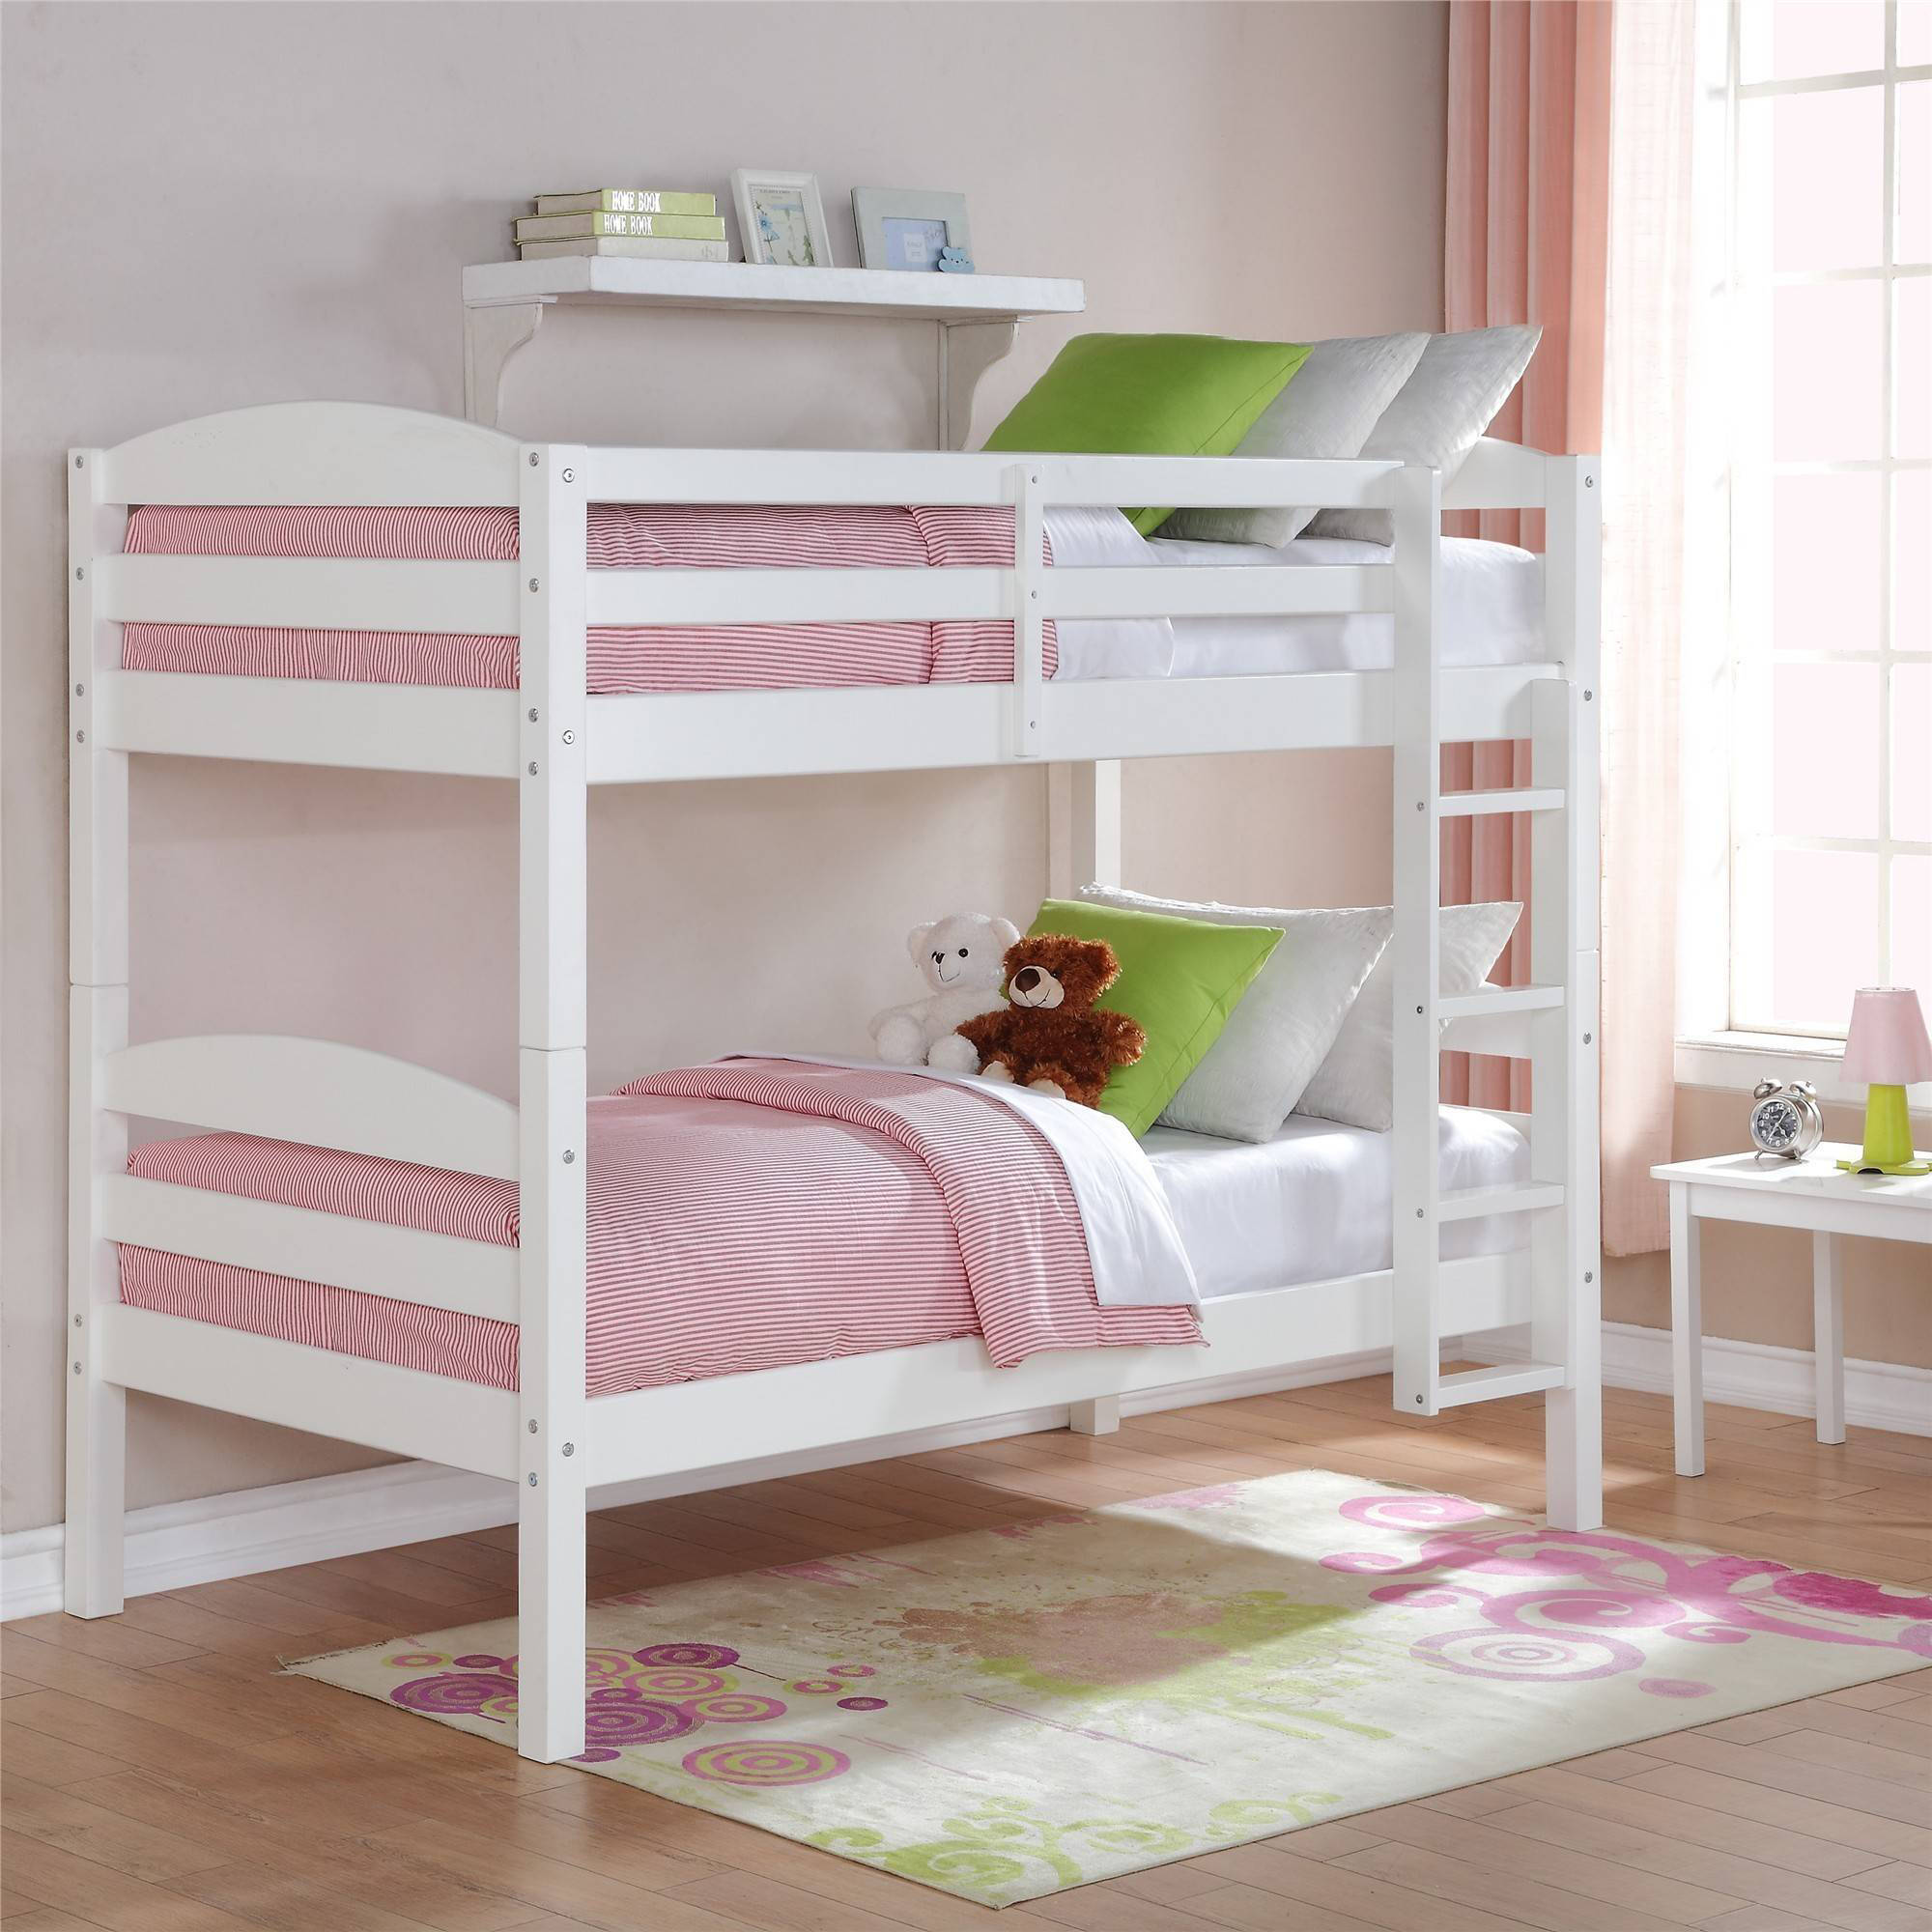 Mainstays Twin Over Twin Wood Bunk Bed, Multiple Finishes